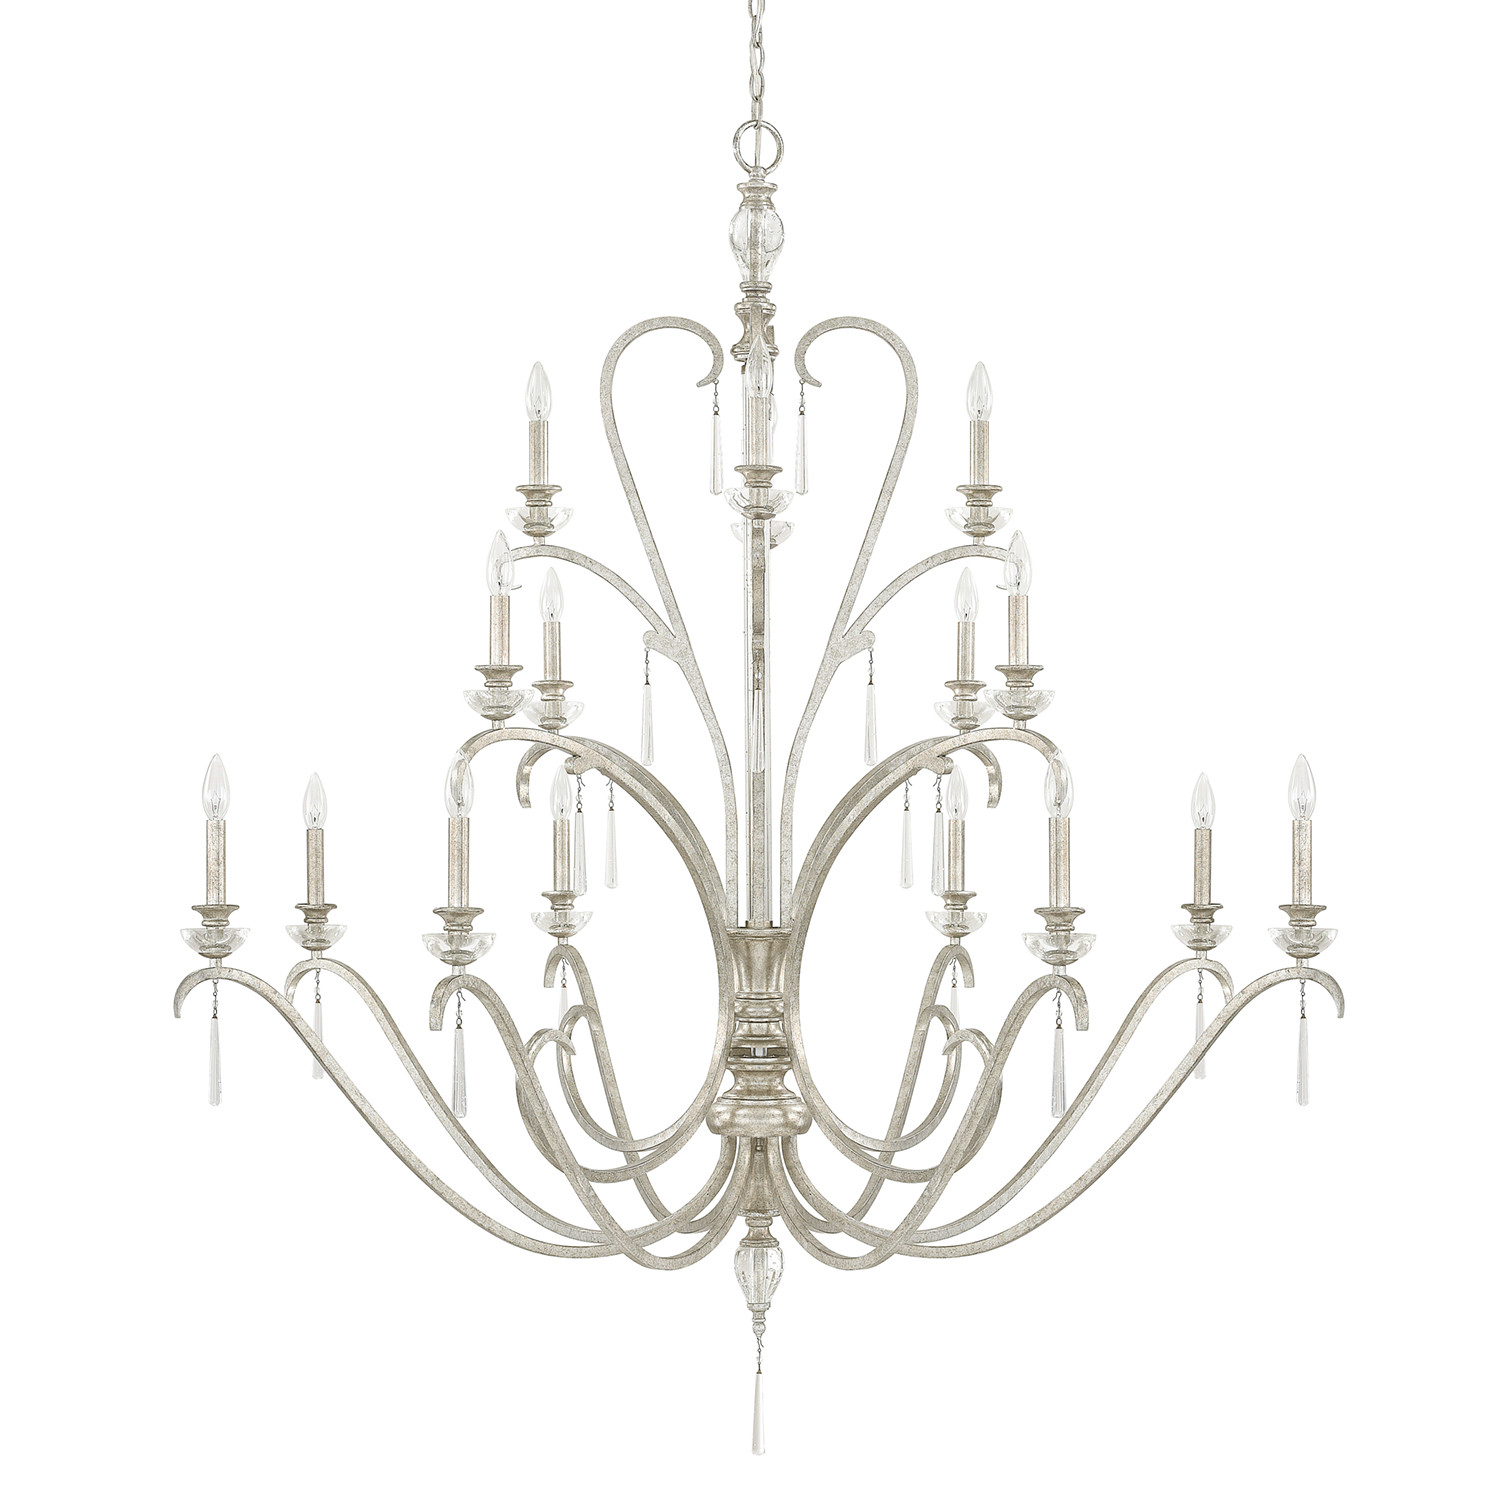 16 Light Chandelier from the Celine collection by Capital Lighting 4780AS 000